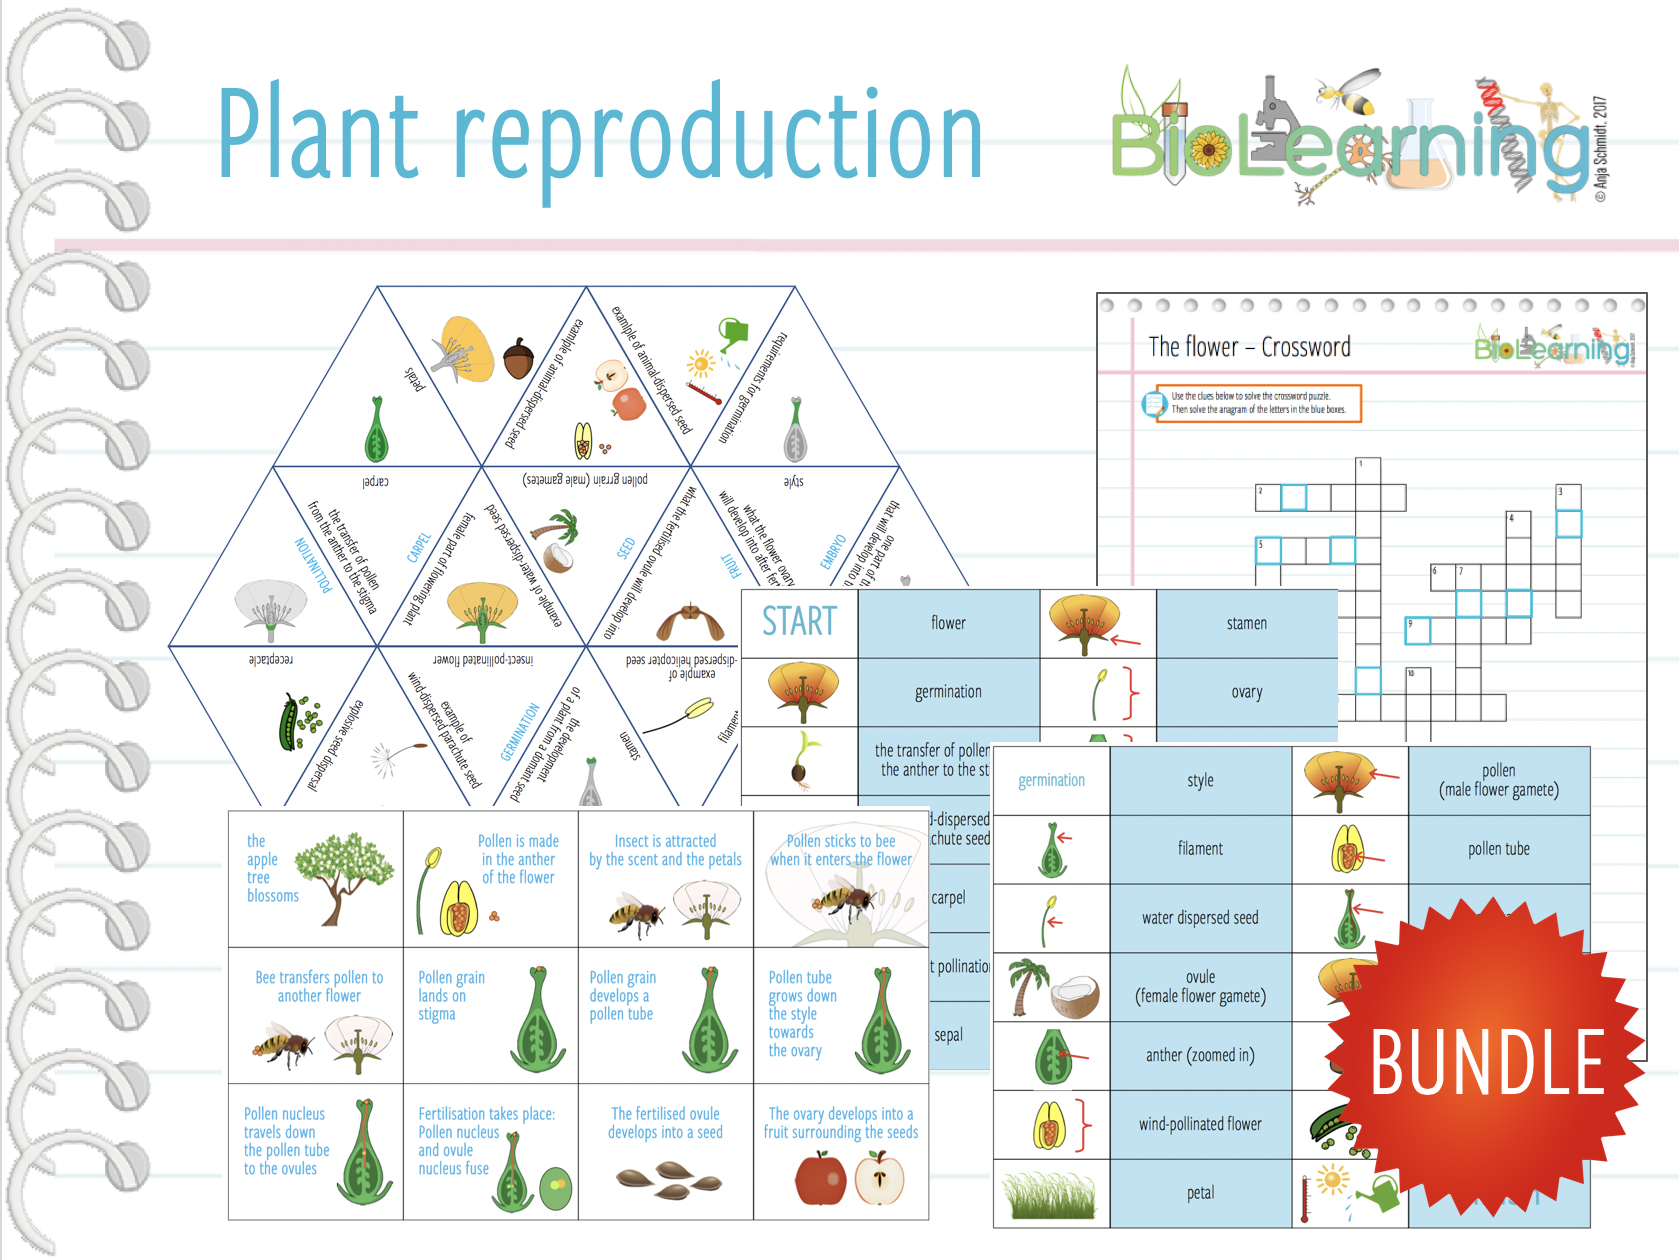 Flowering plant reproduction - 4x Games and activities (KS3)